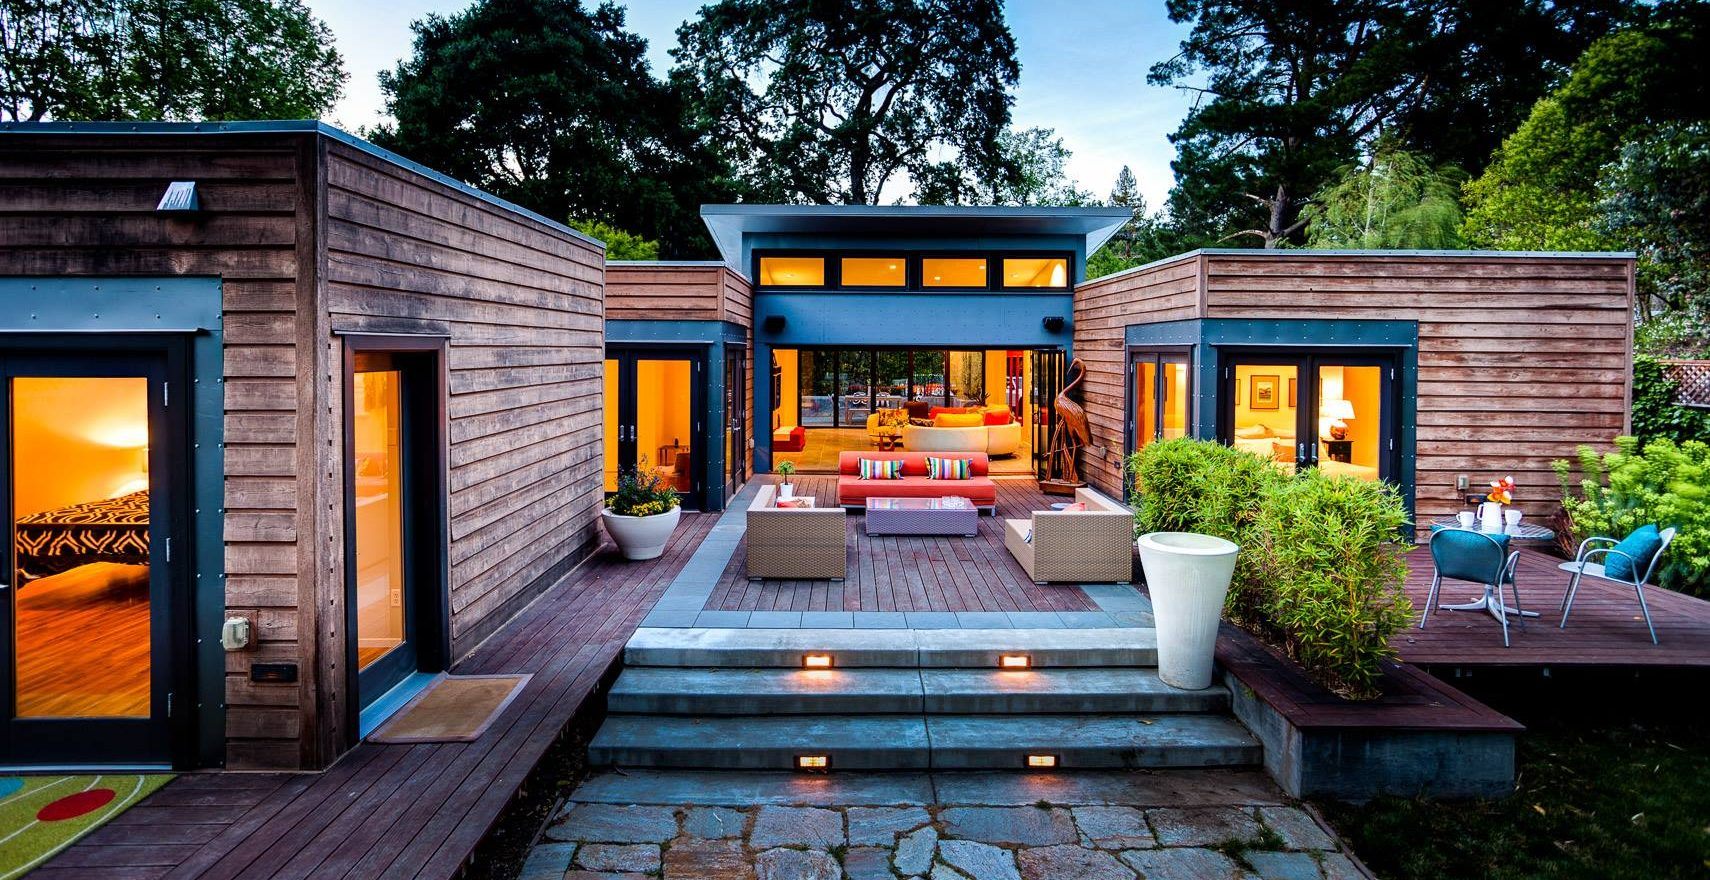 Best prefab homes 2021: buying guide and builder selection